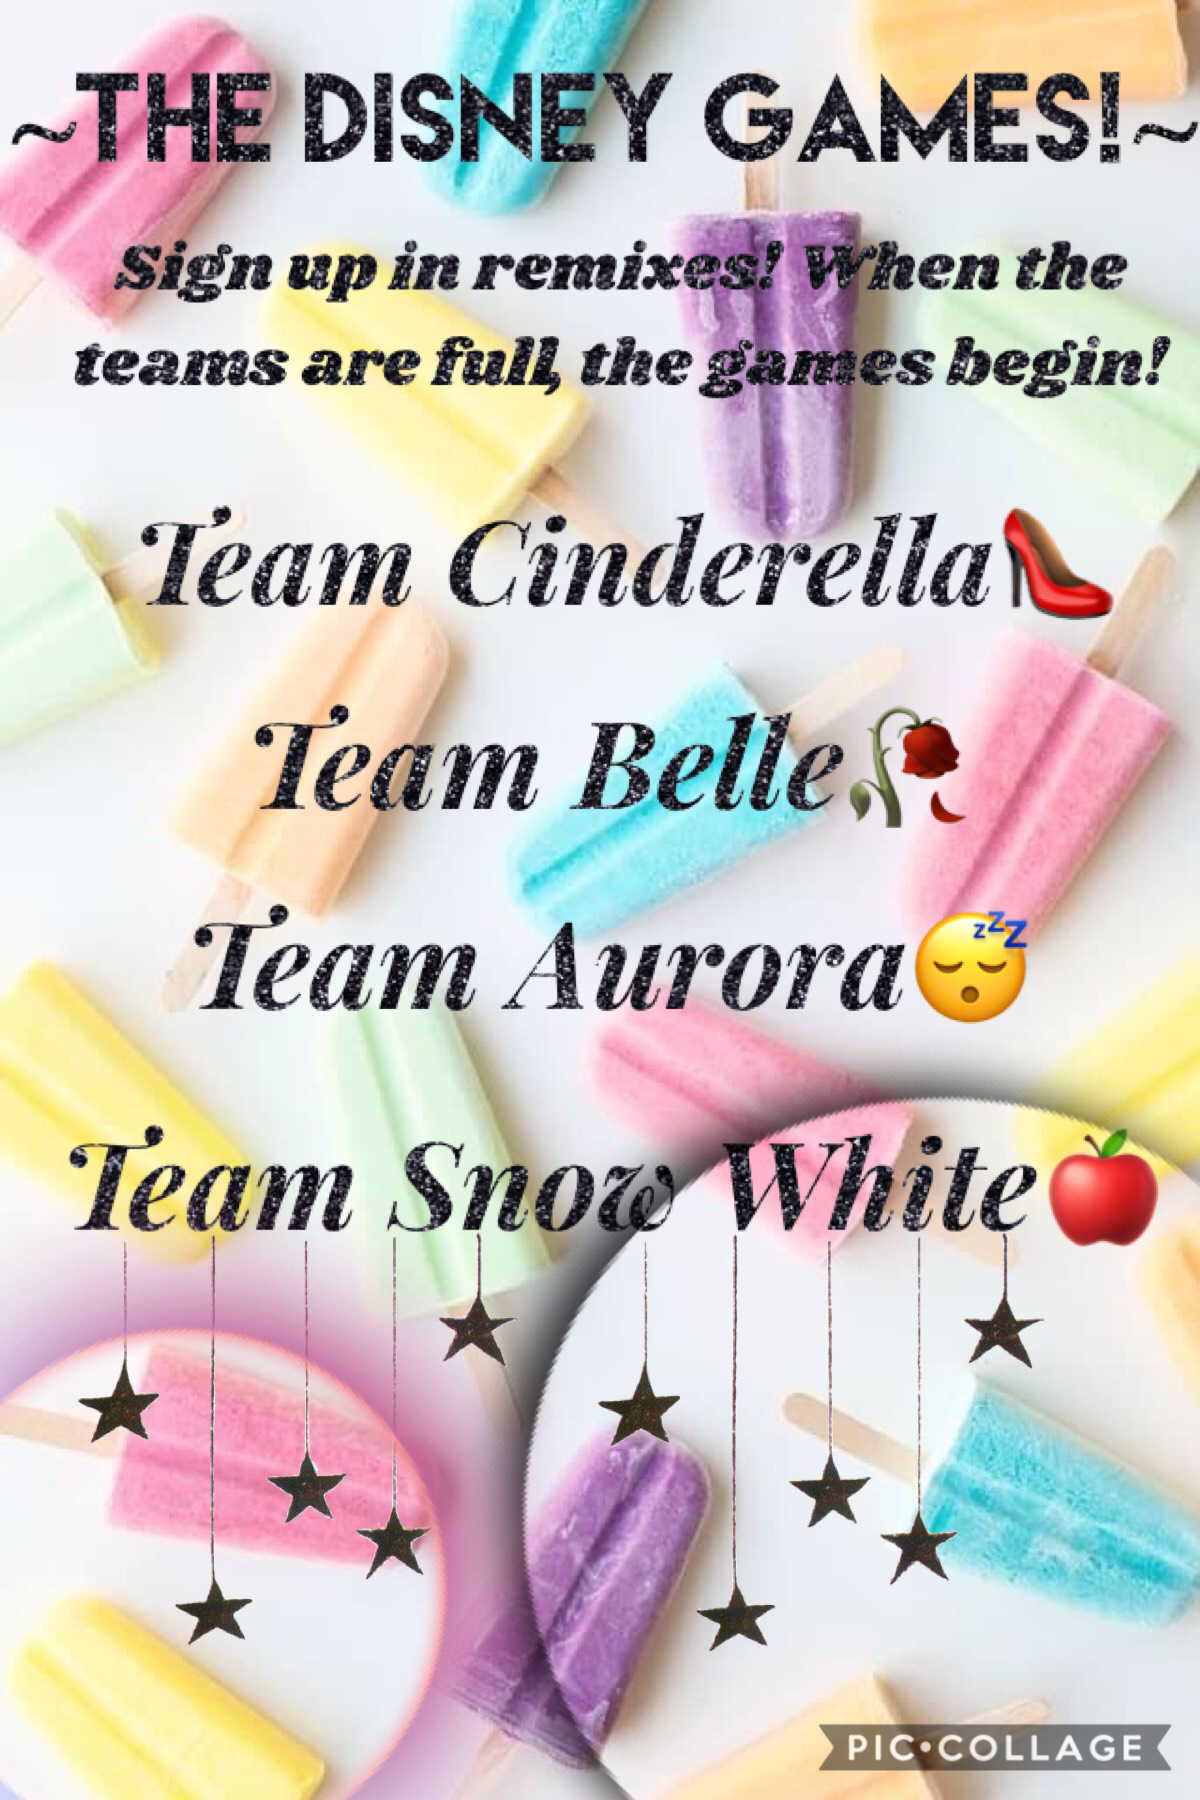 So... I'm redoing this! Each team will have 4 members, make sure to read through the comments to see if teams are full.😄